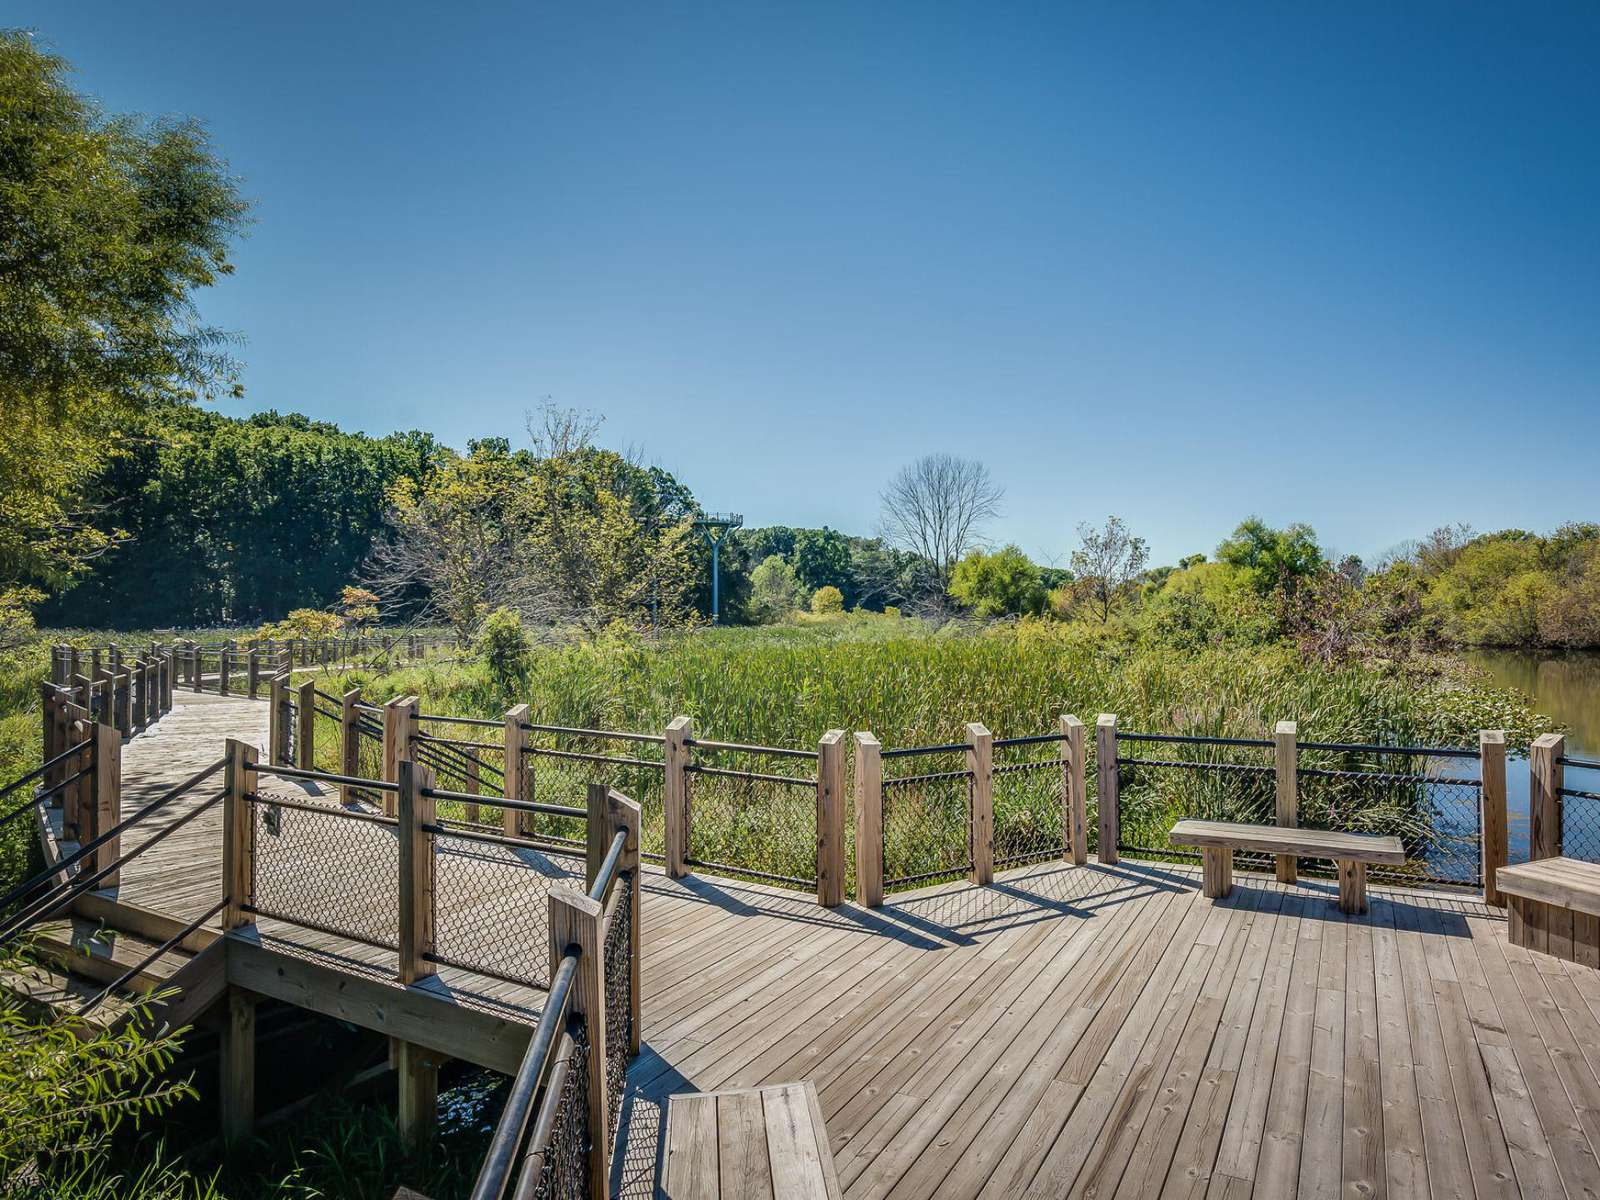 Galien River Park Boardwalk